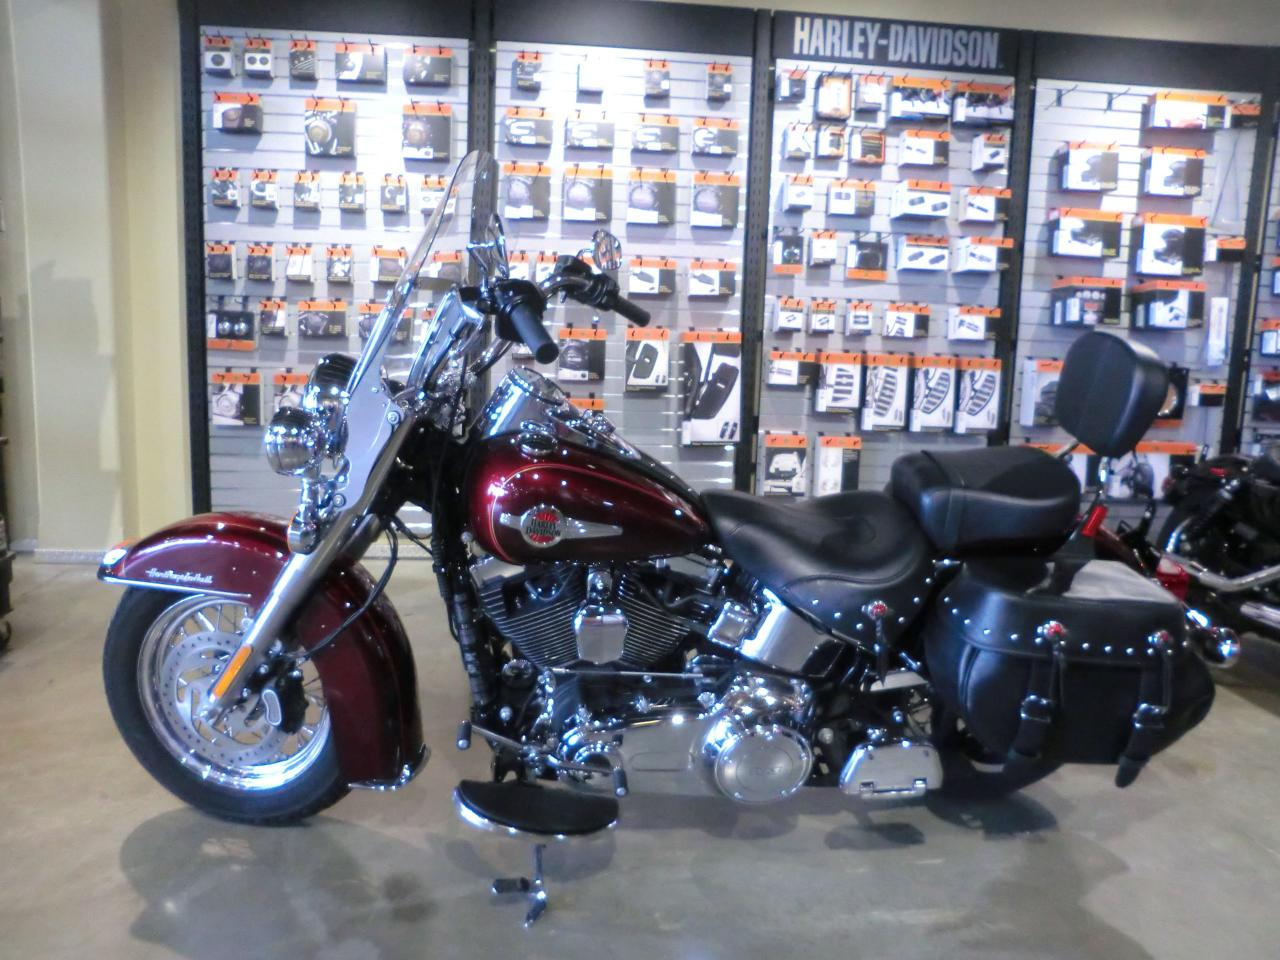 Used 2017 Harley-Davidson Heritage Softail Classic FLSTC for Sale in